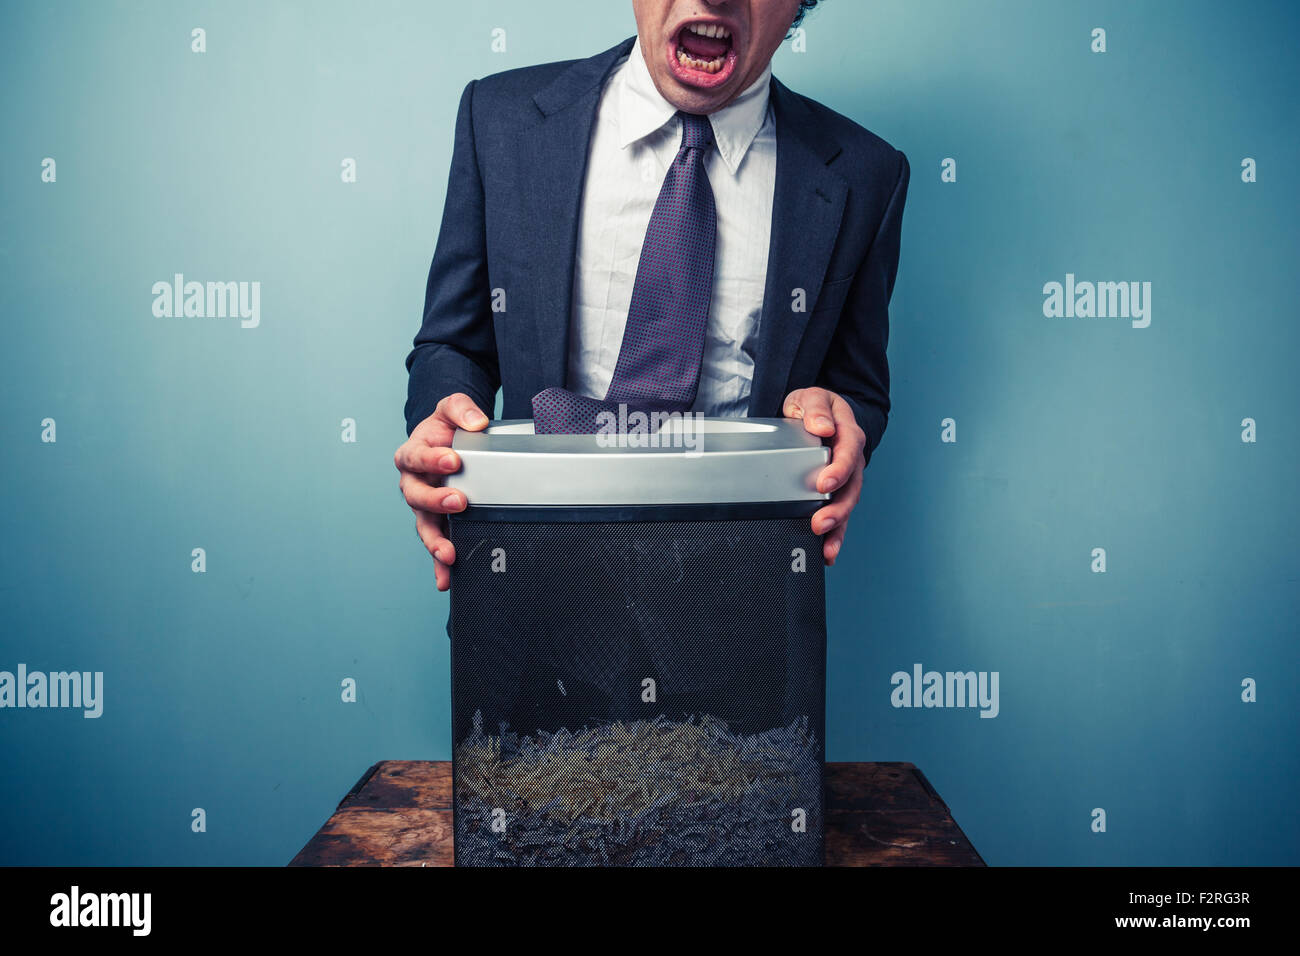 Businessman has got his tie stuck in a paper shredder - Stock Image